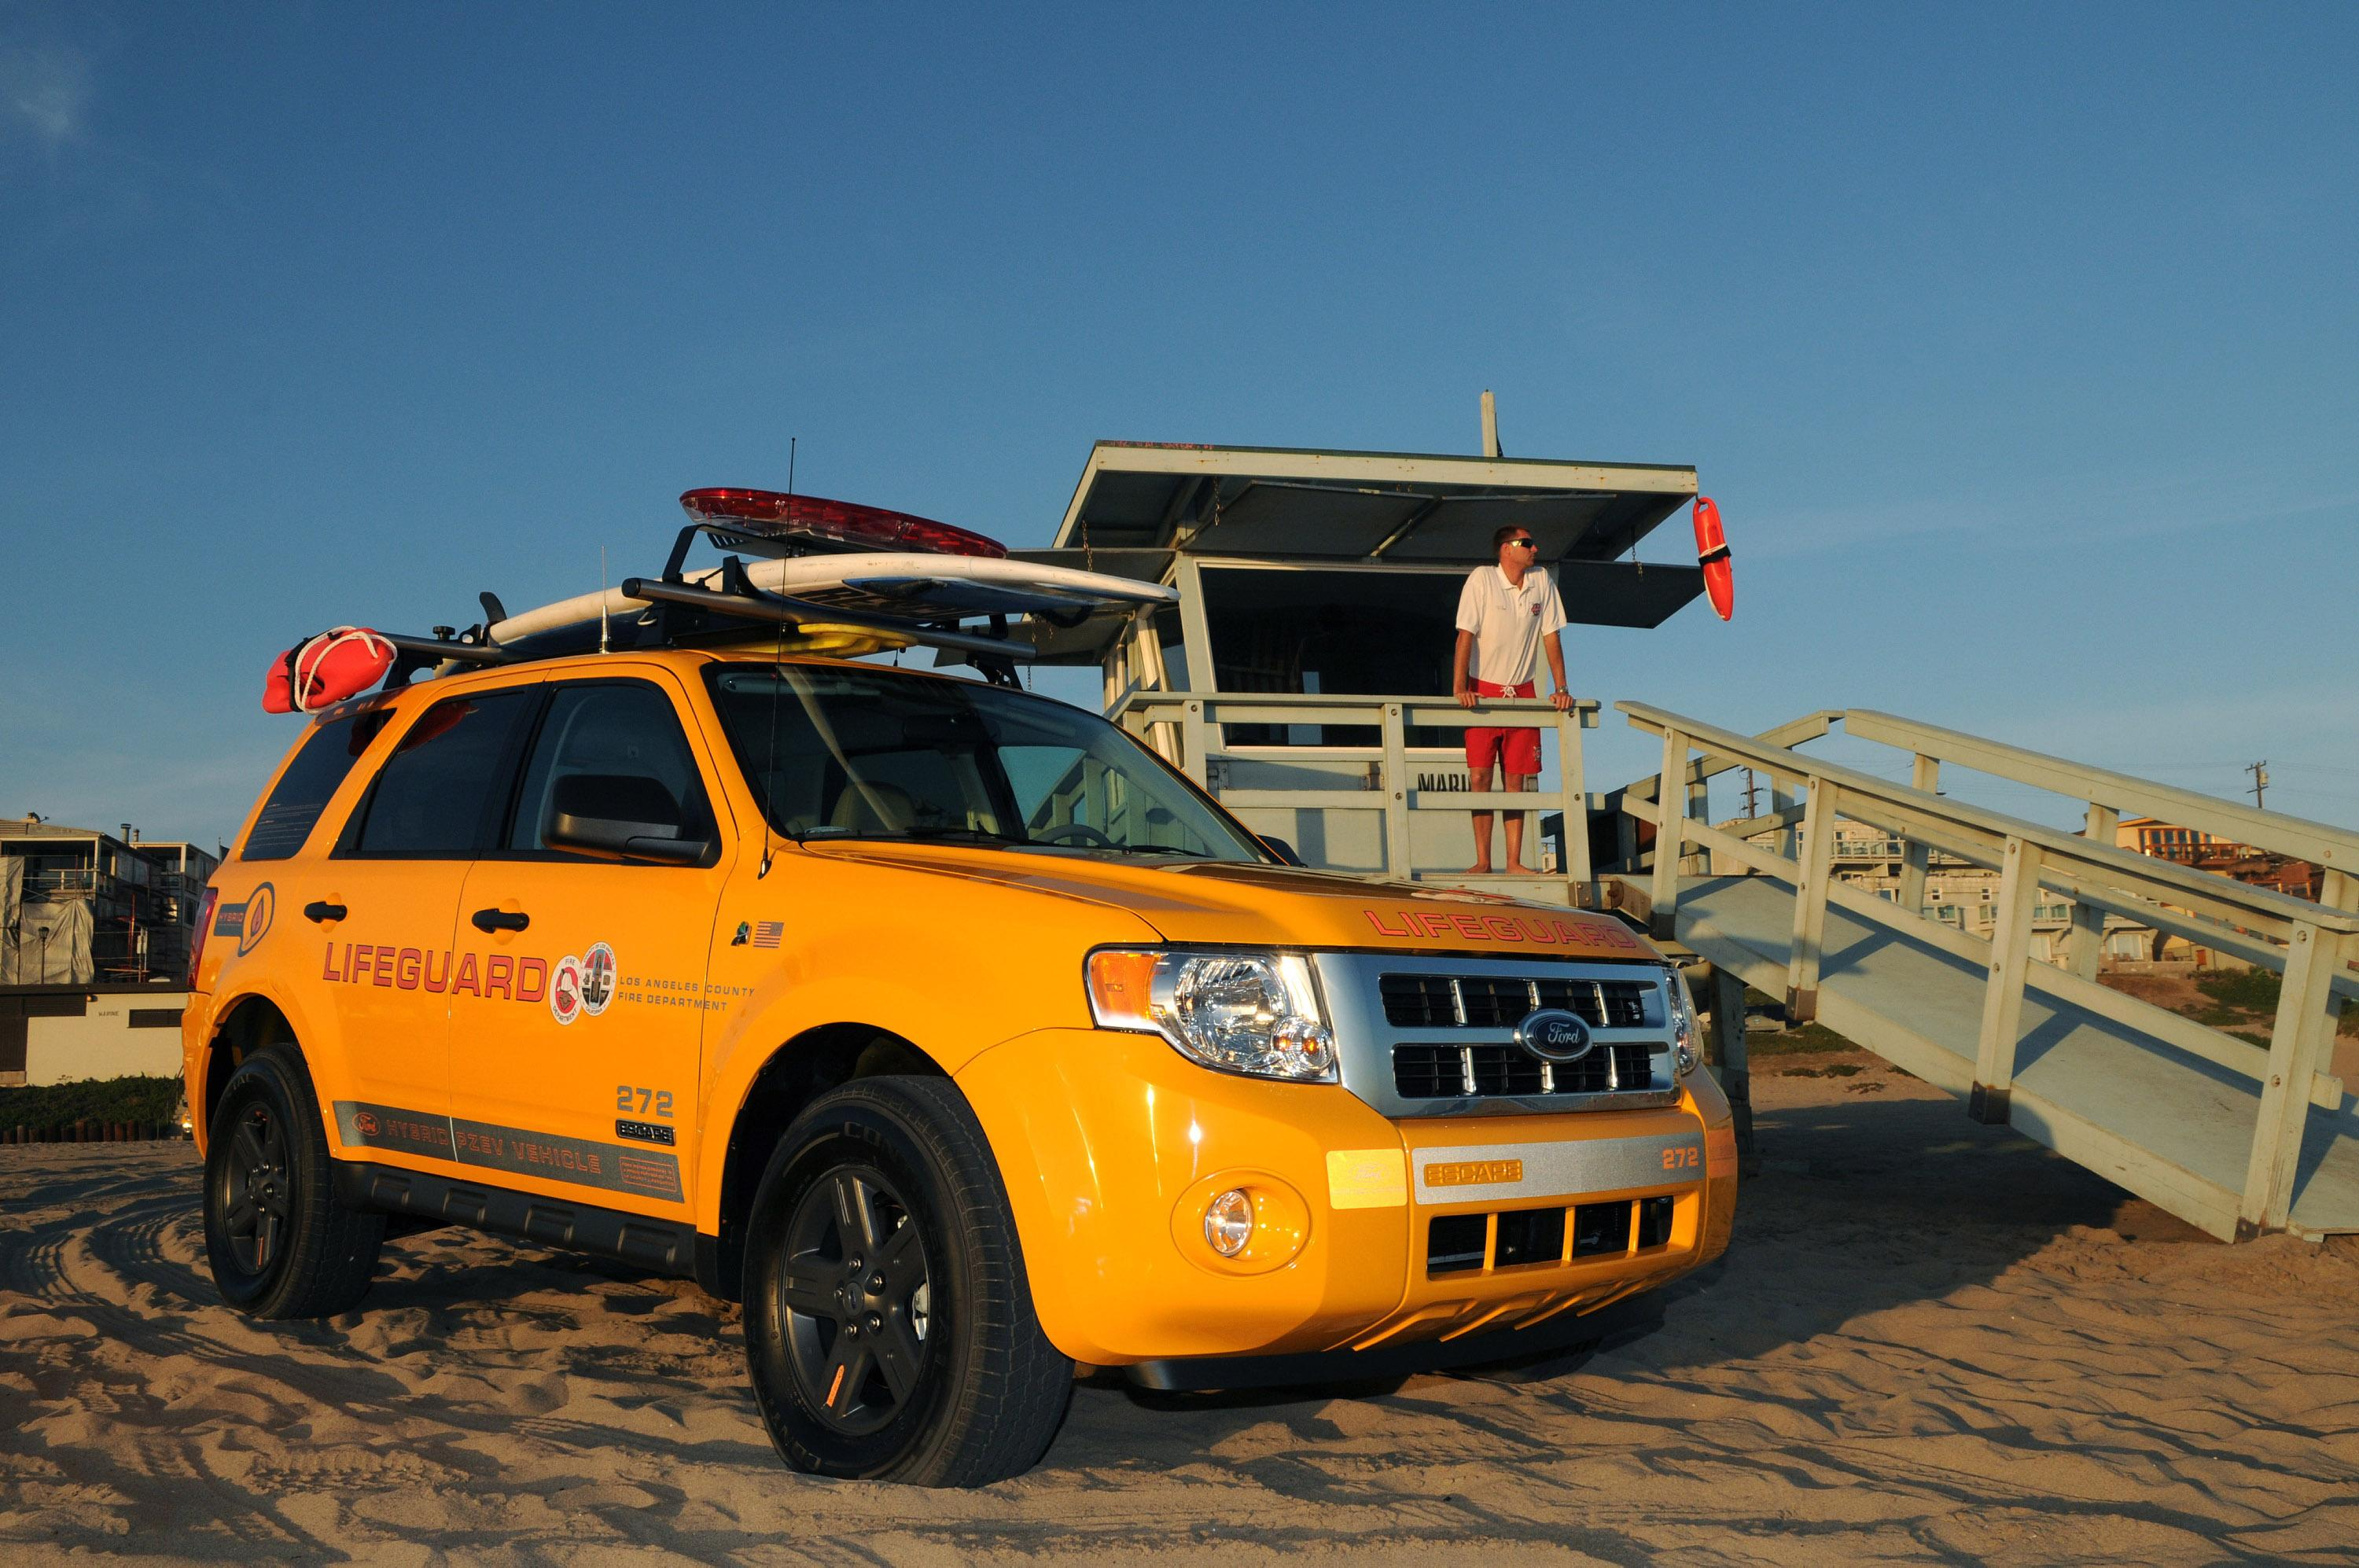 2008 Ford Escape Hybrid Lifeguard Vehicles Review - Top Speed - photo#44